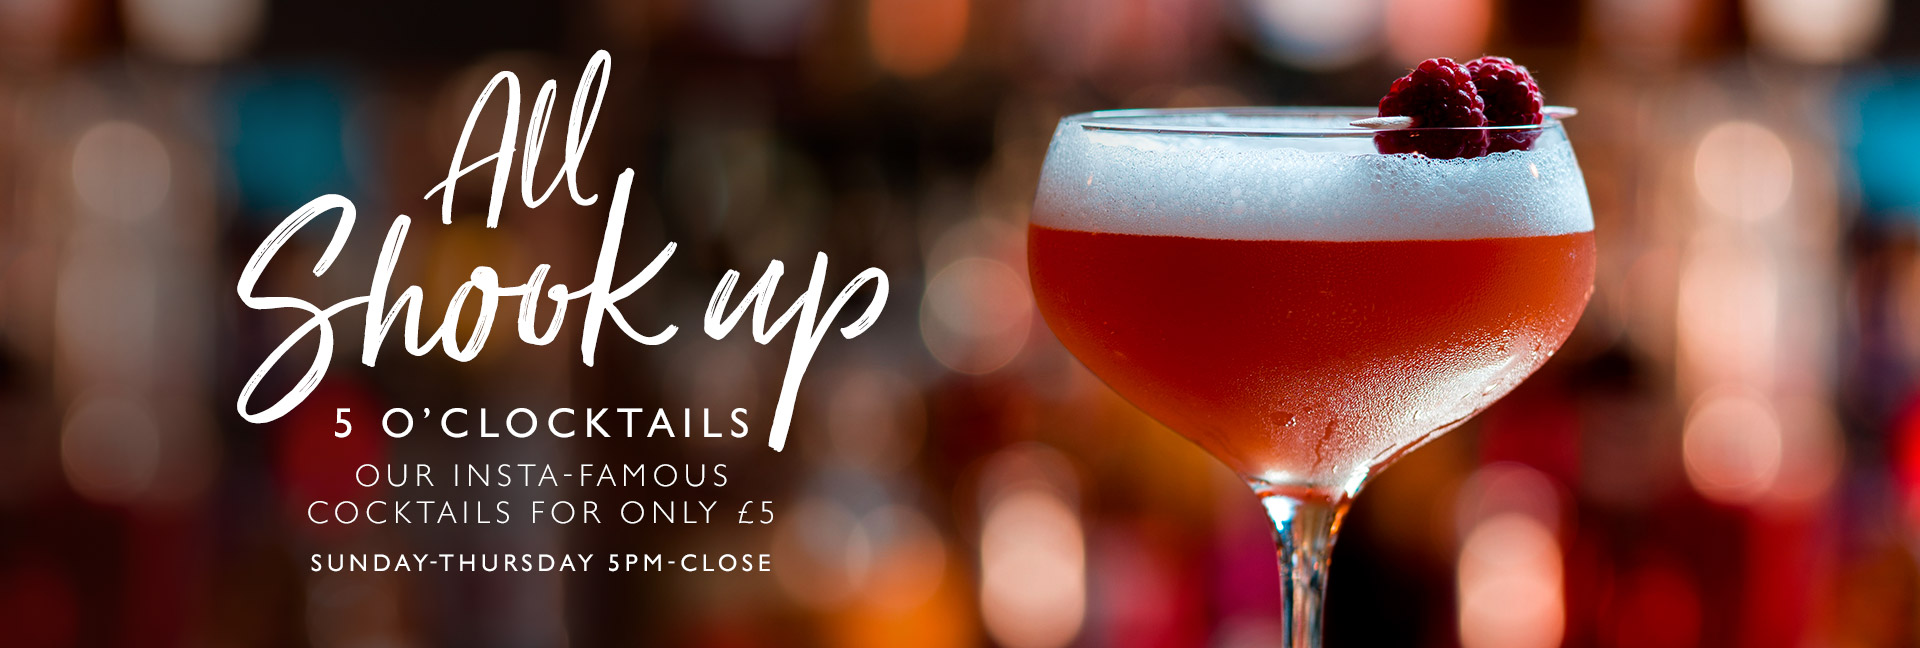 5 O'clocktails at All Bar One Greek Street Leeds - Book now